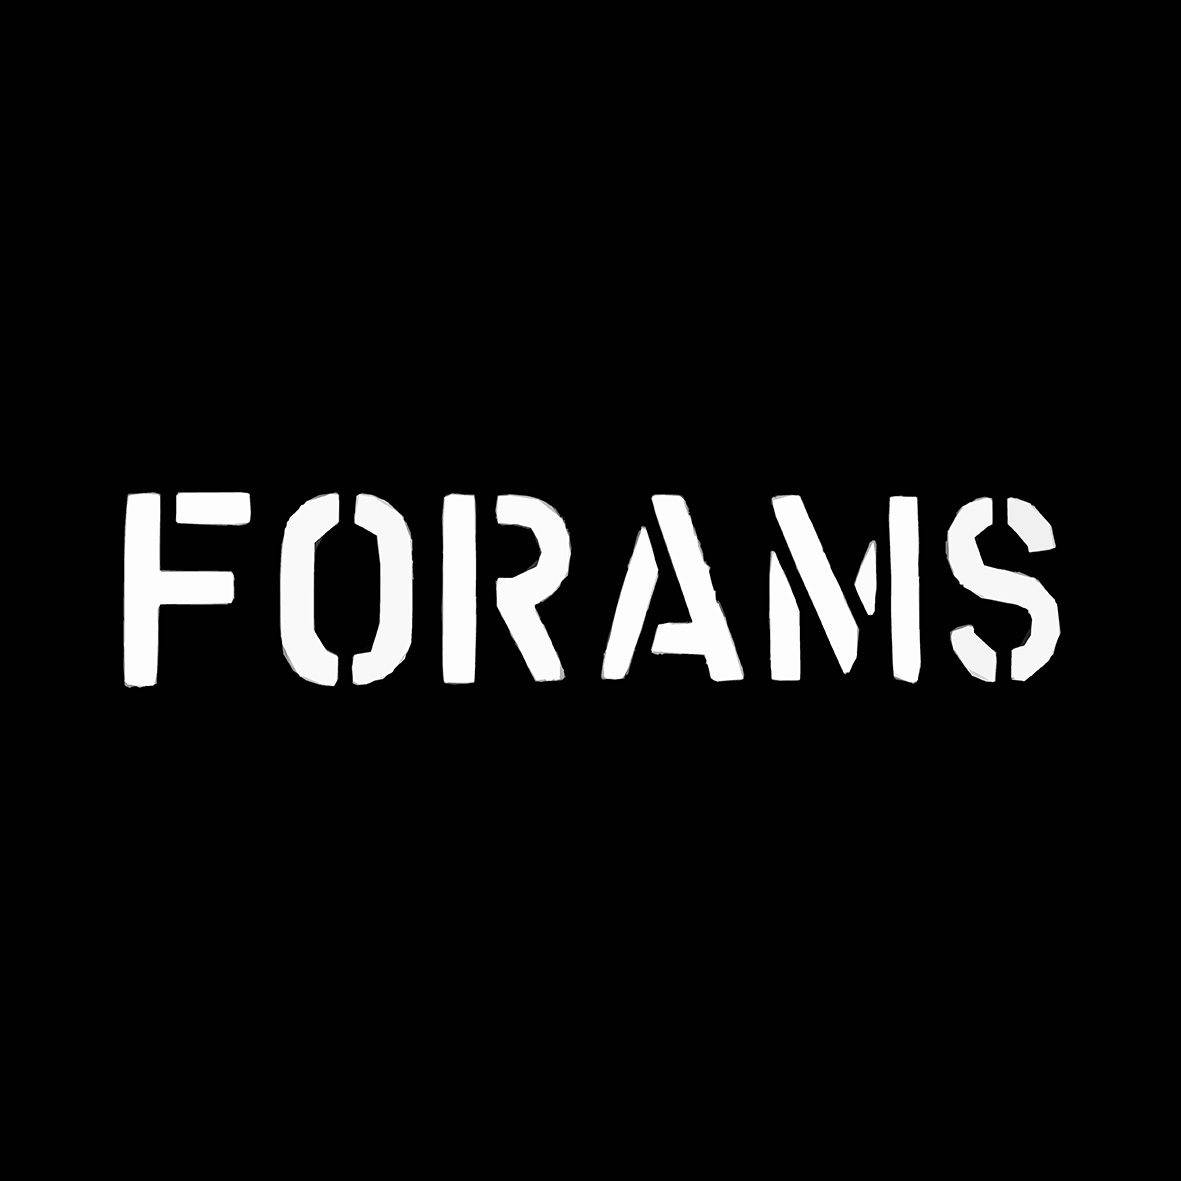 Forams